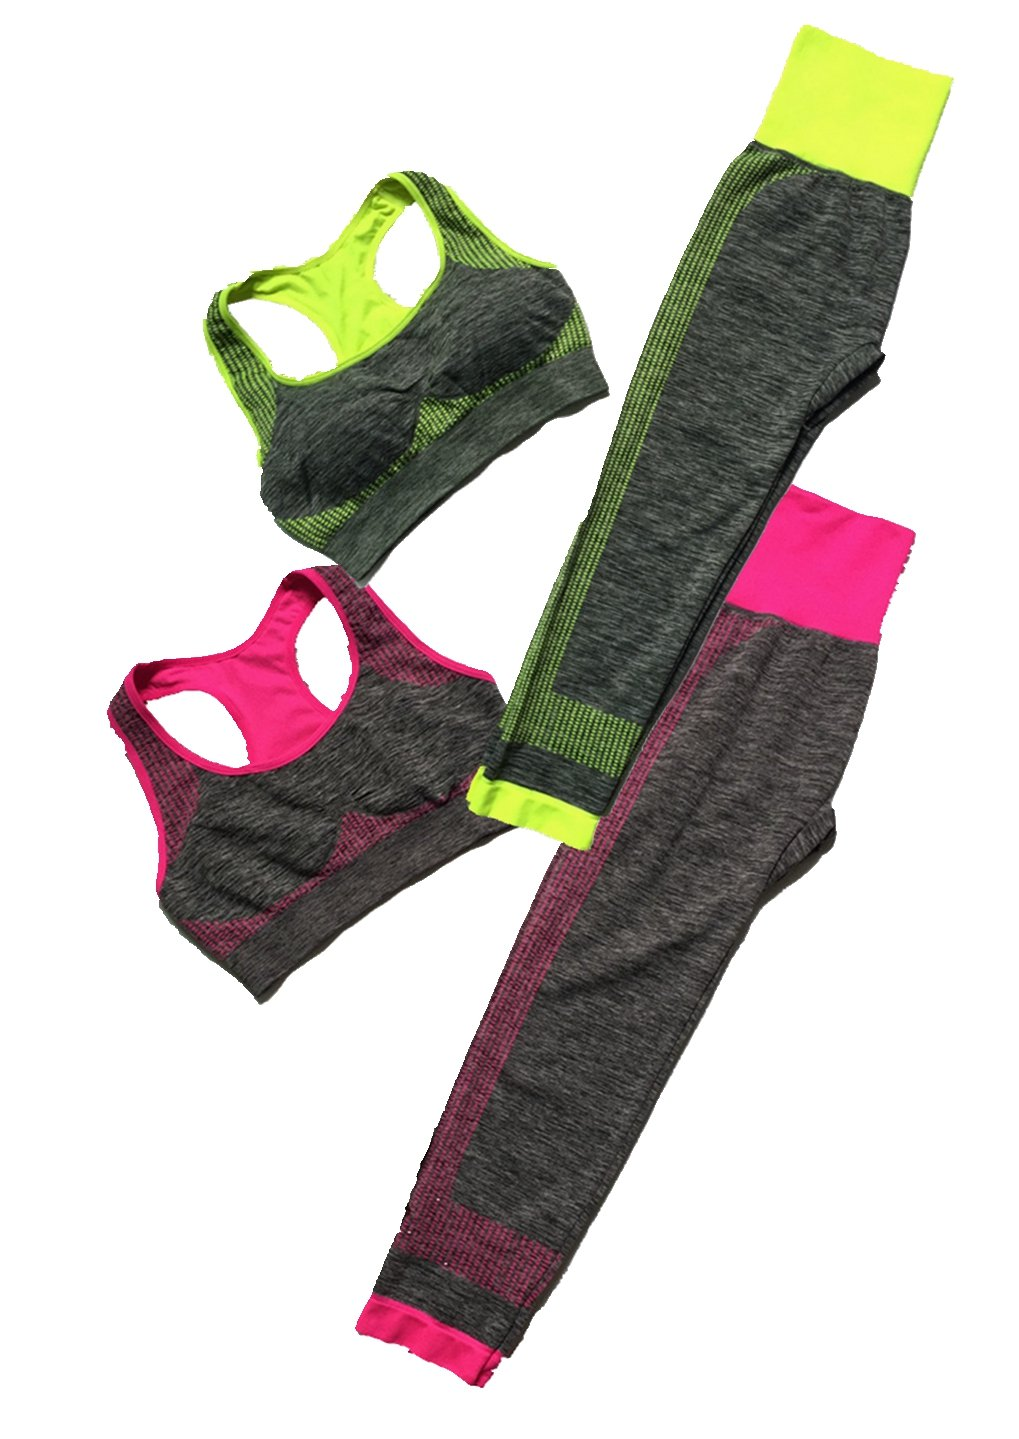 Women's 2 Pieces Fitness / Yoga Workout Sports Bra Pants Leggings Set (2 Set/4 Pieces),rose/Green,38C 38D 40B 40C 42A 42B